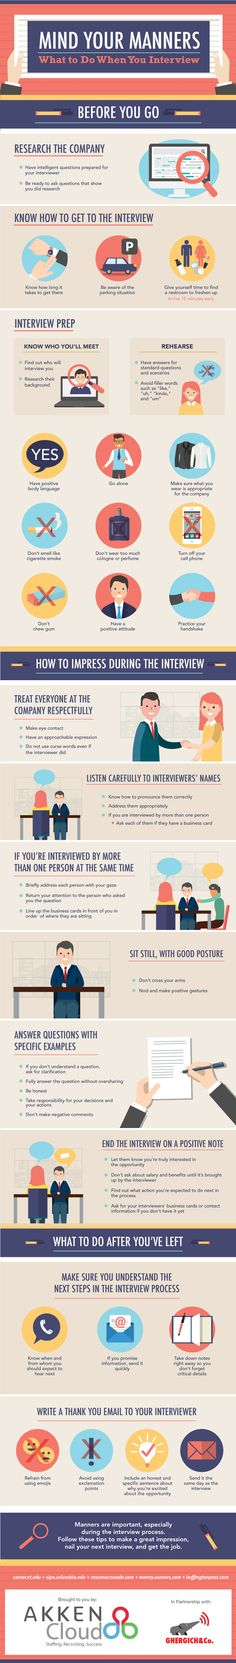 infographic 8 Interview Tips For That Dream Job Image Description How to nail that job interview - with tips! Interview Process, Job Interview Tips, Interview Images, Job Images, International Jobs, Research Companies, Marketing Calendar, Mind You, Job Posting